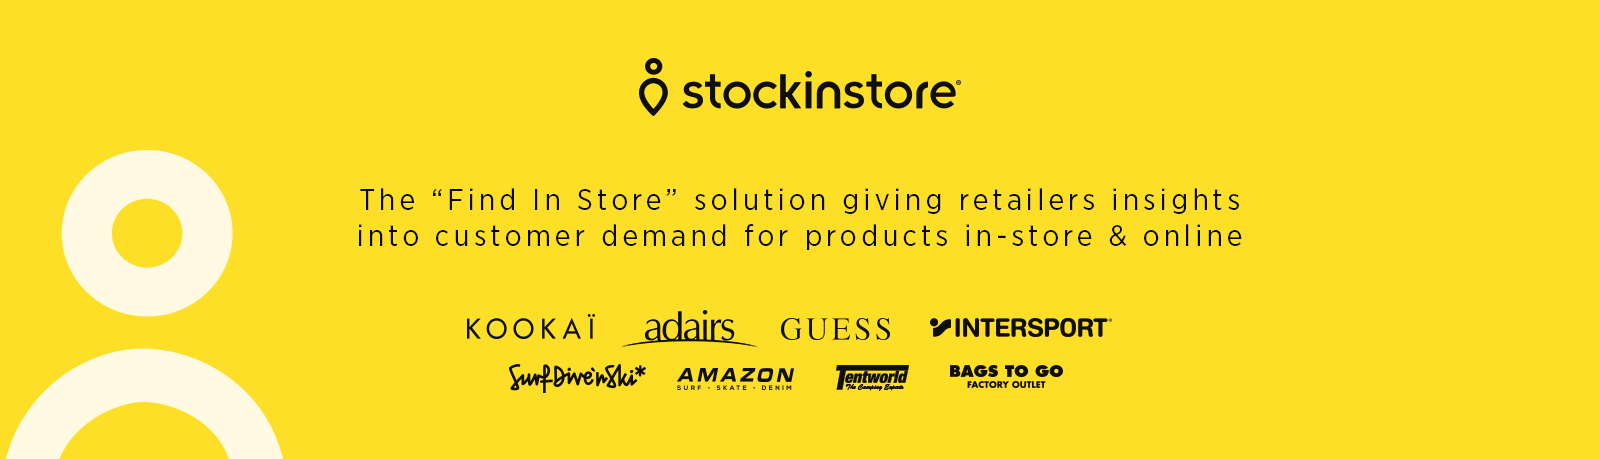 stockinstore is the find in store solution with unique reporting on customer demand for products across their store network